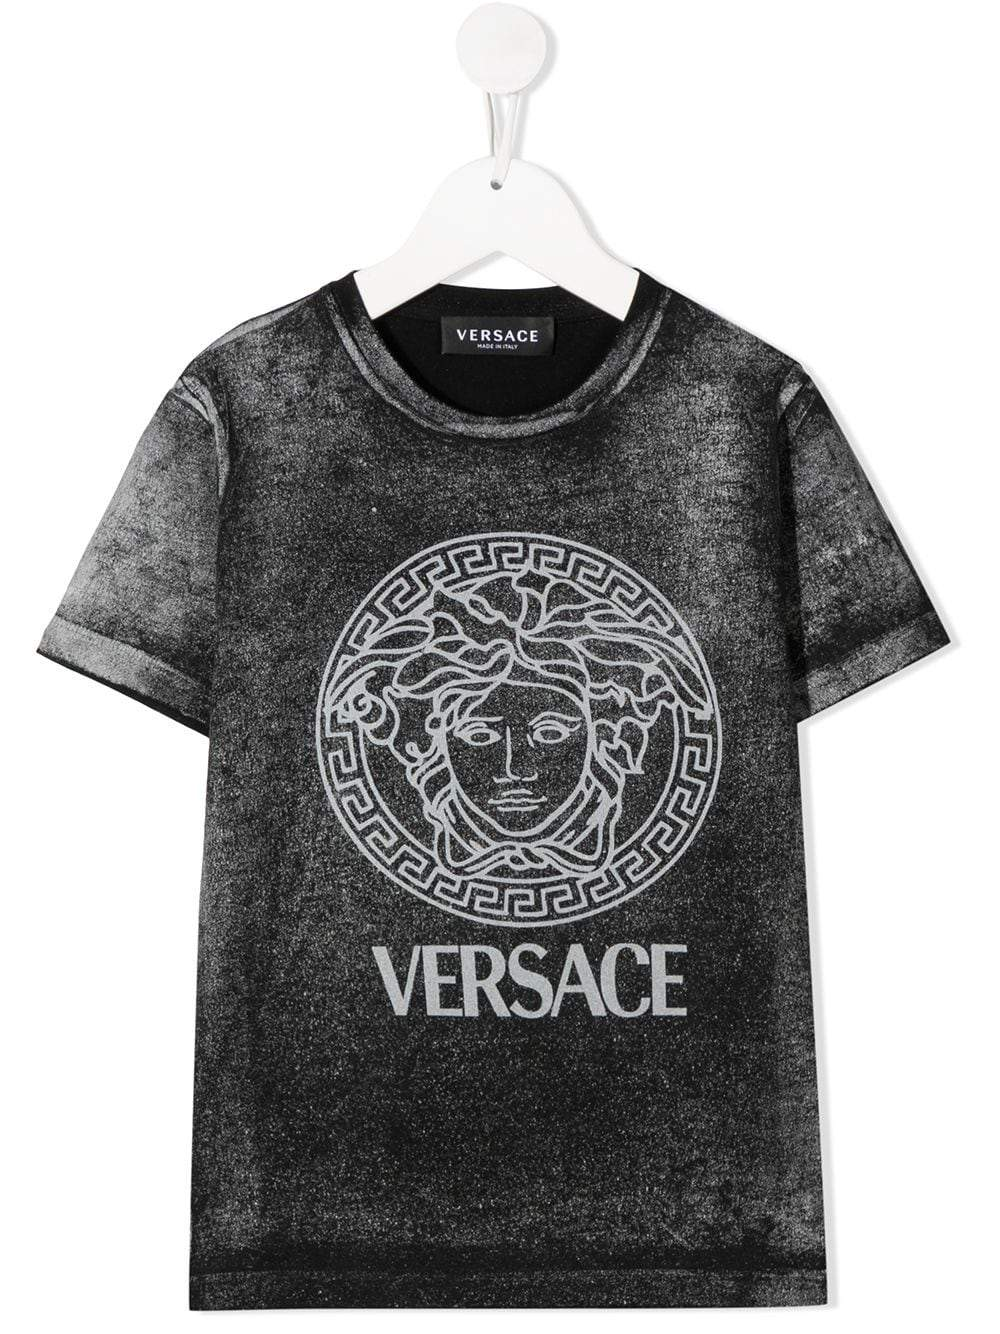 VERSACE KIDS Medusa Print T-Shirt Grey/White